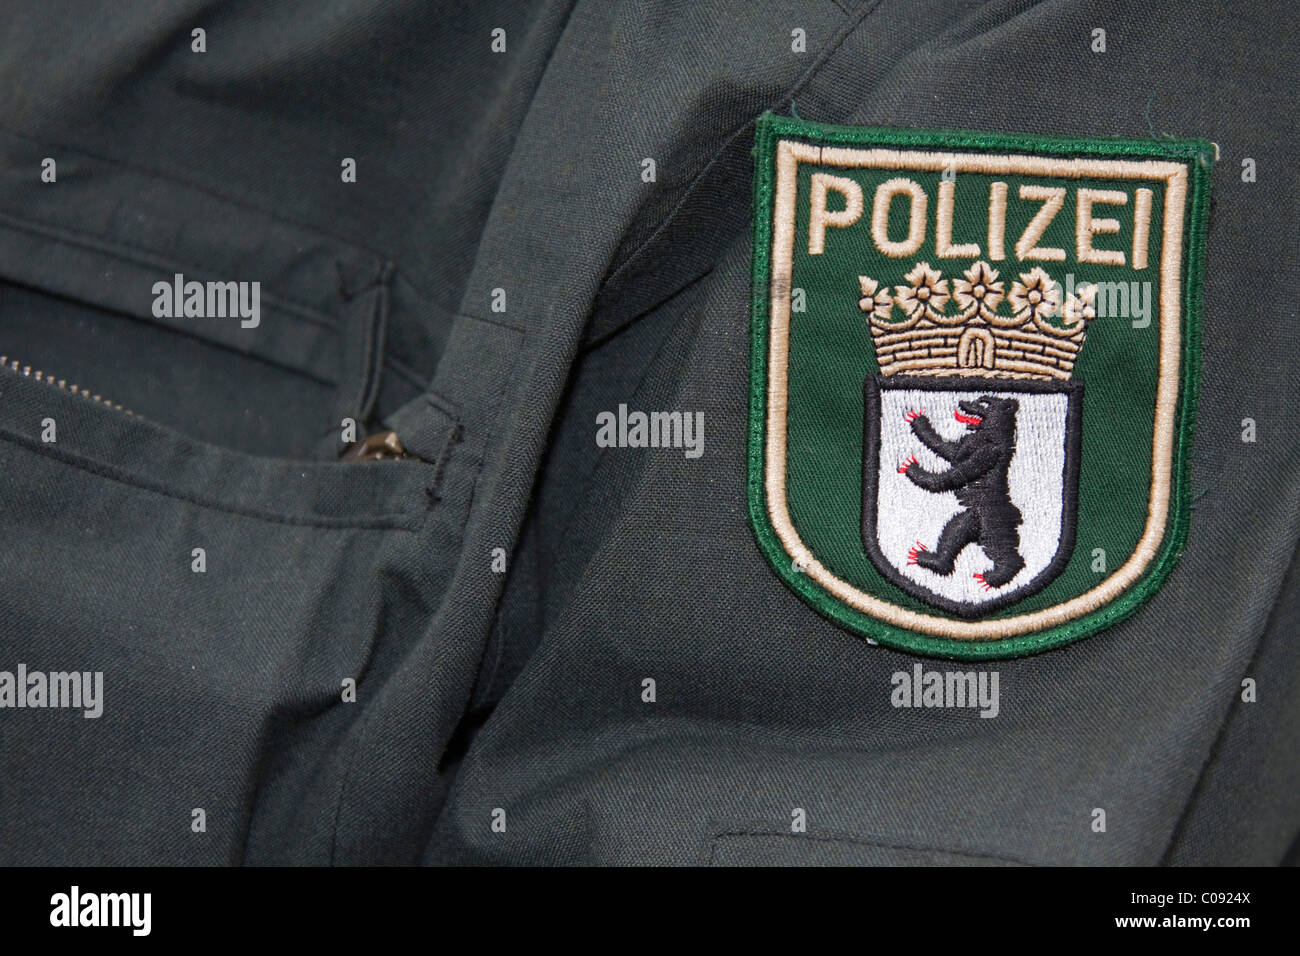 Berlin's coat of arms on a police uniform - Stock Image